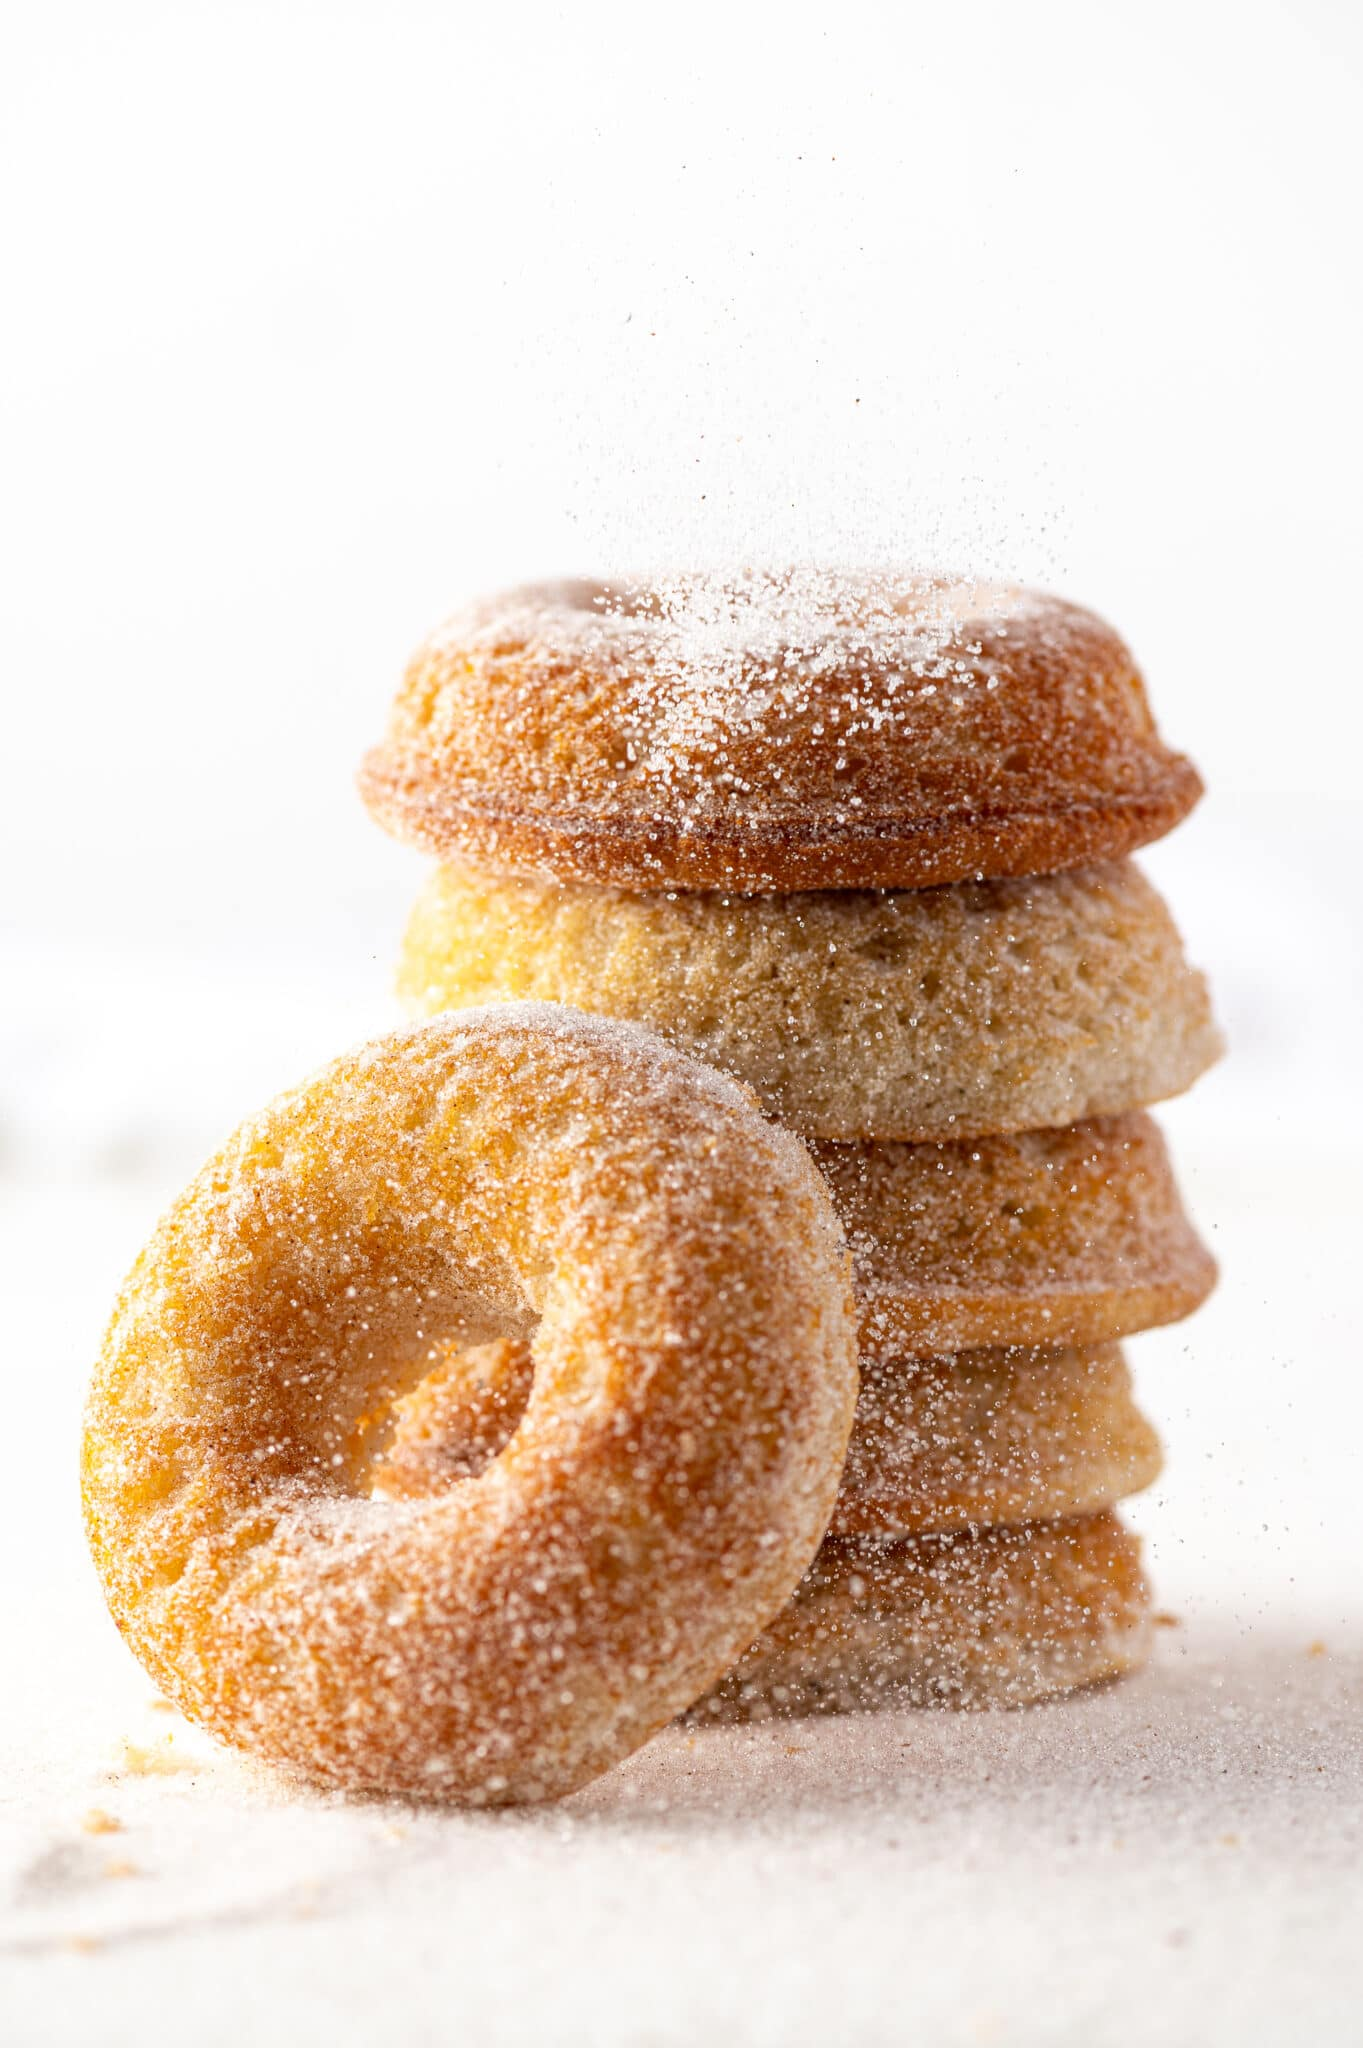 Old fashioned donuts stacked against a bright white background with cinnamon sugar being sprinkled over the top.